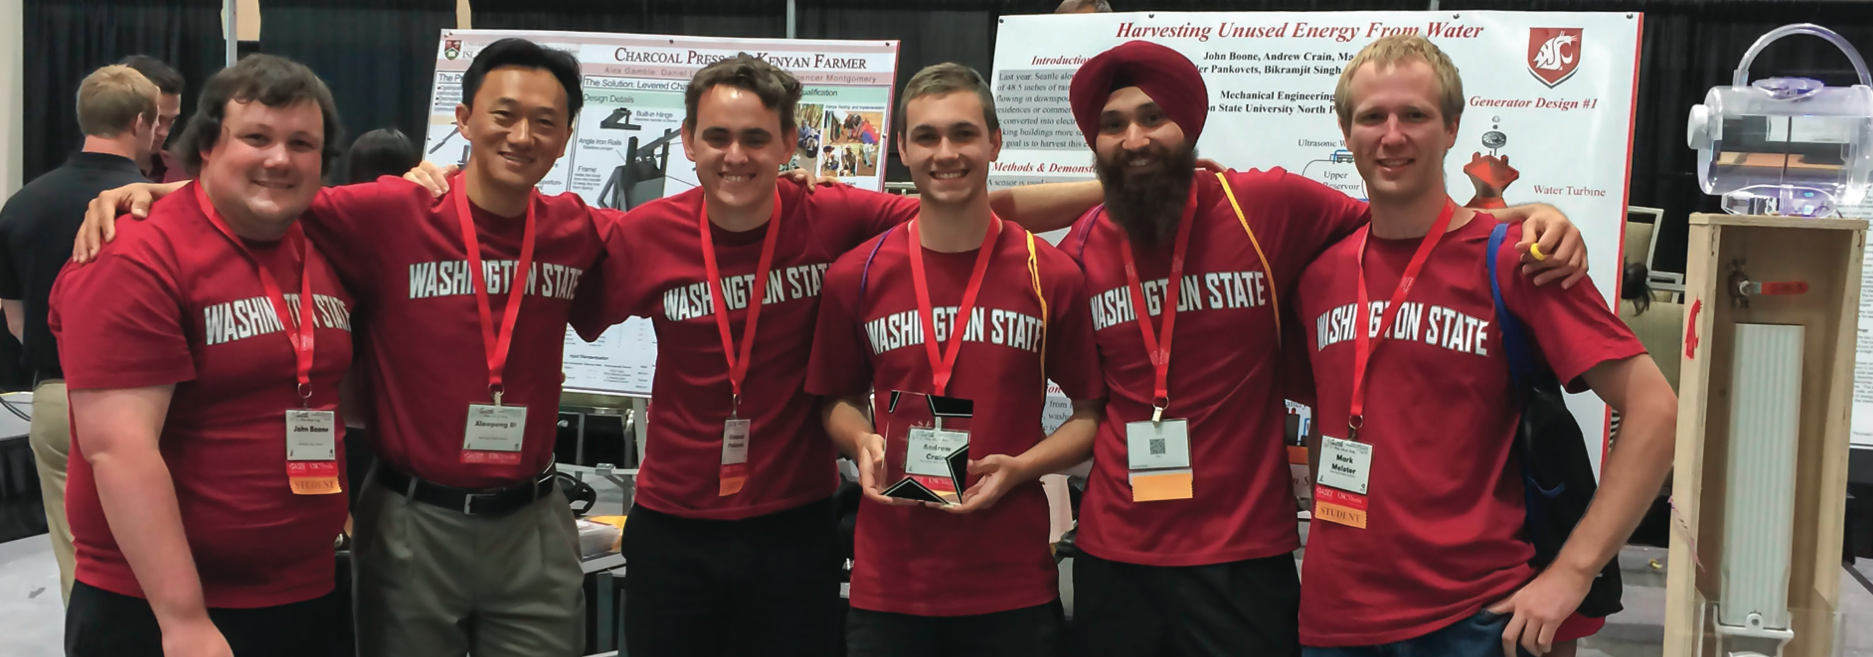 A student team from WSU North Puget Sound at Everett participated in an engineering competition.